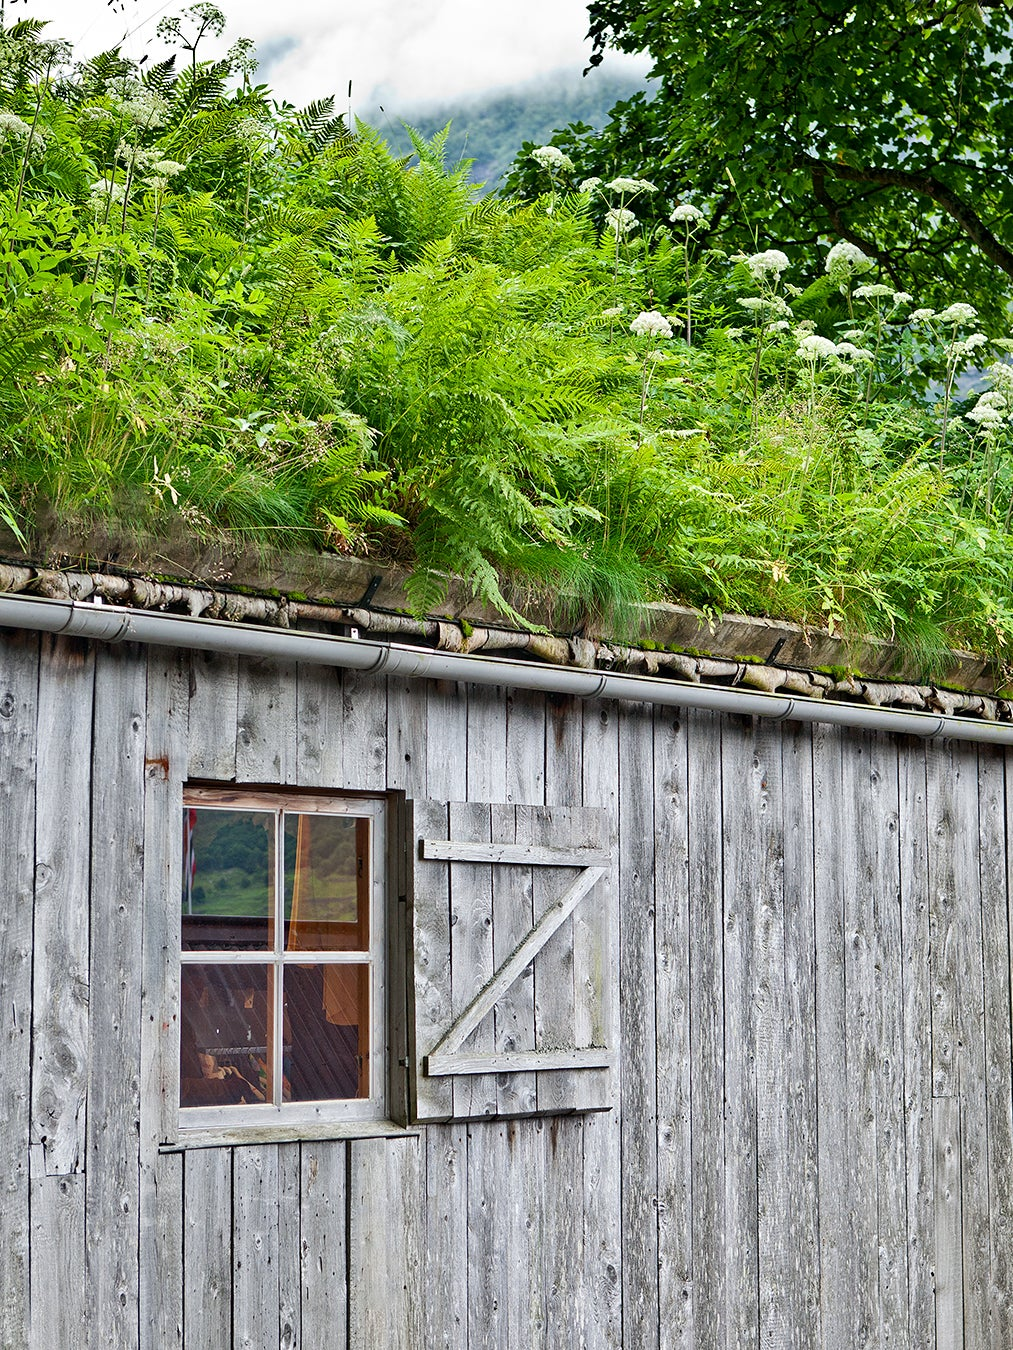 wood shed covered in grass